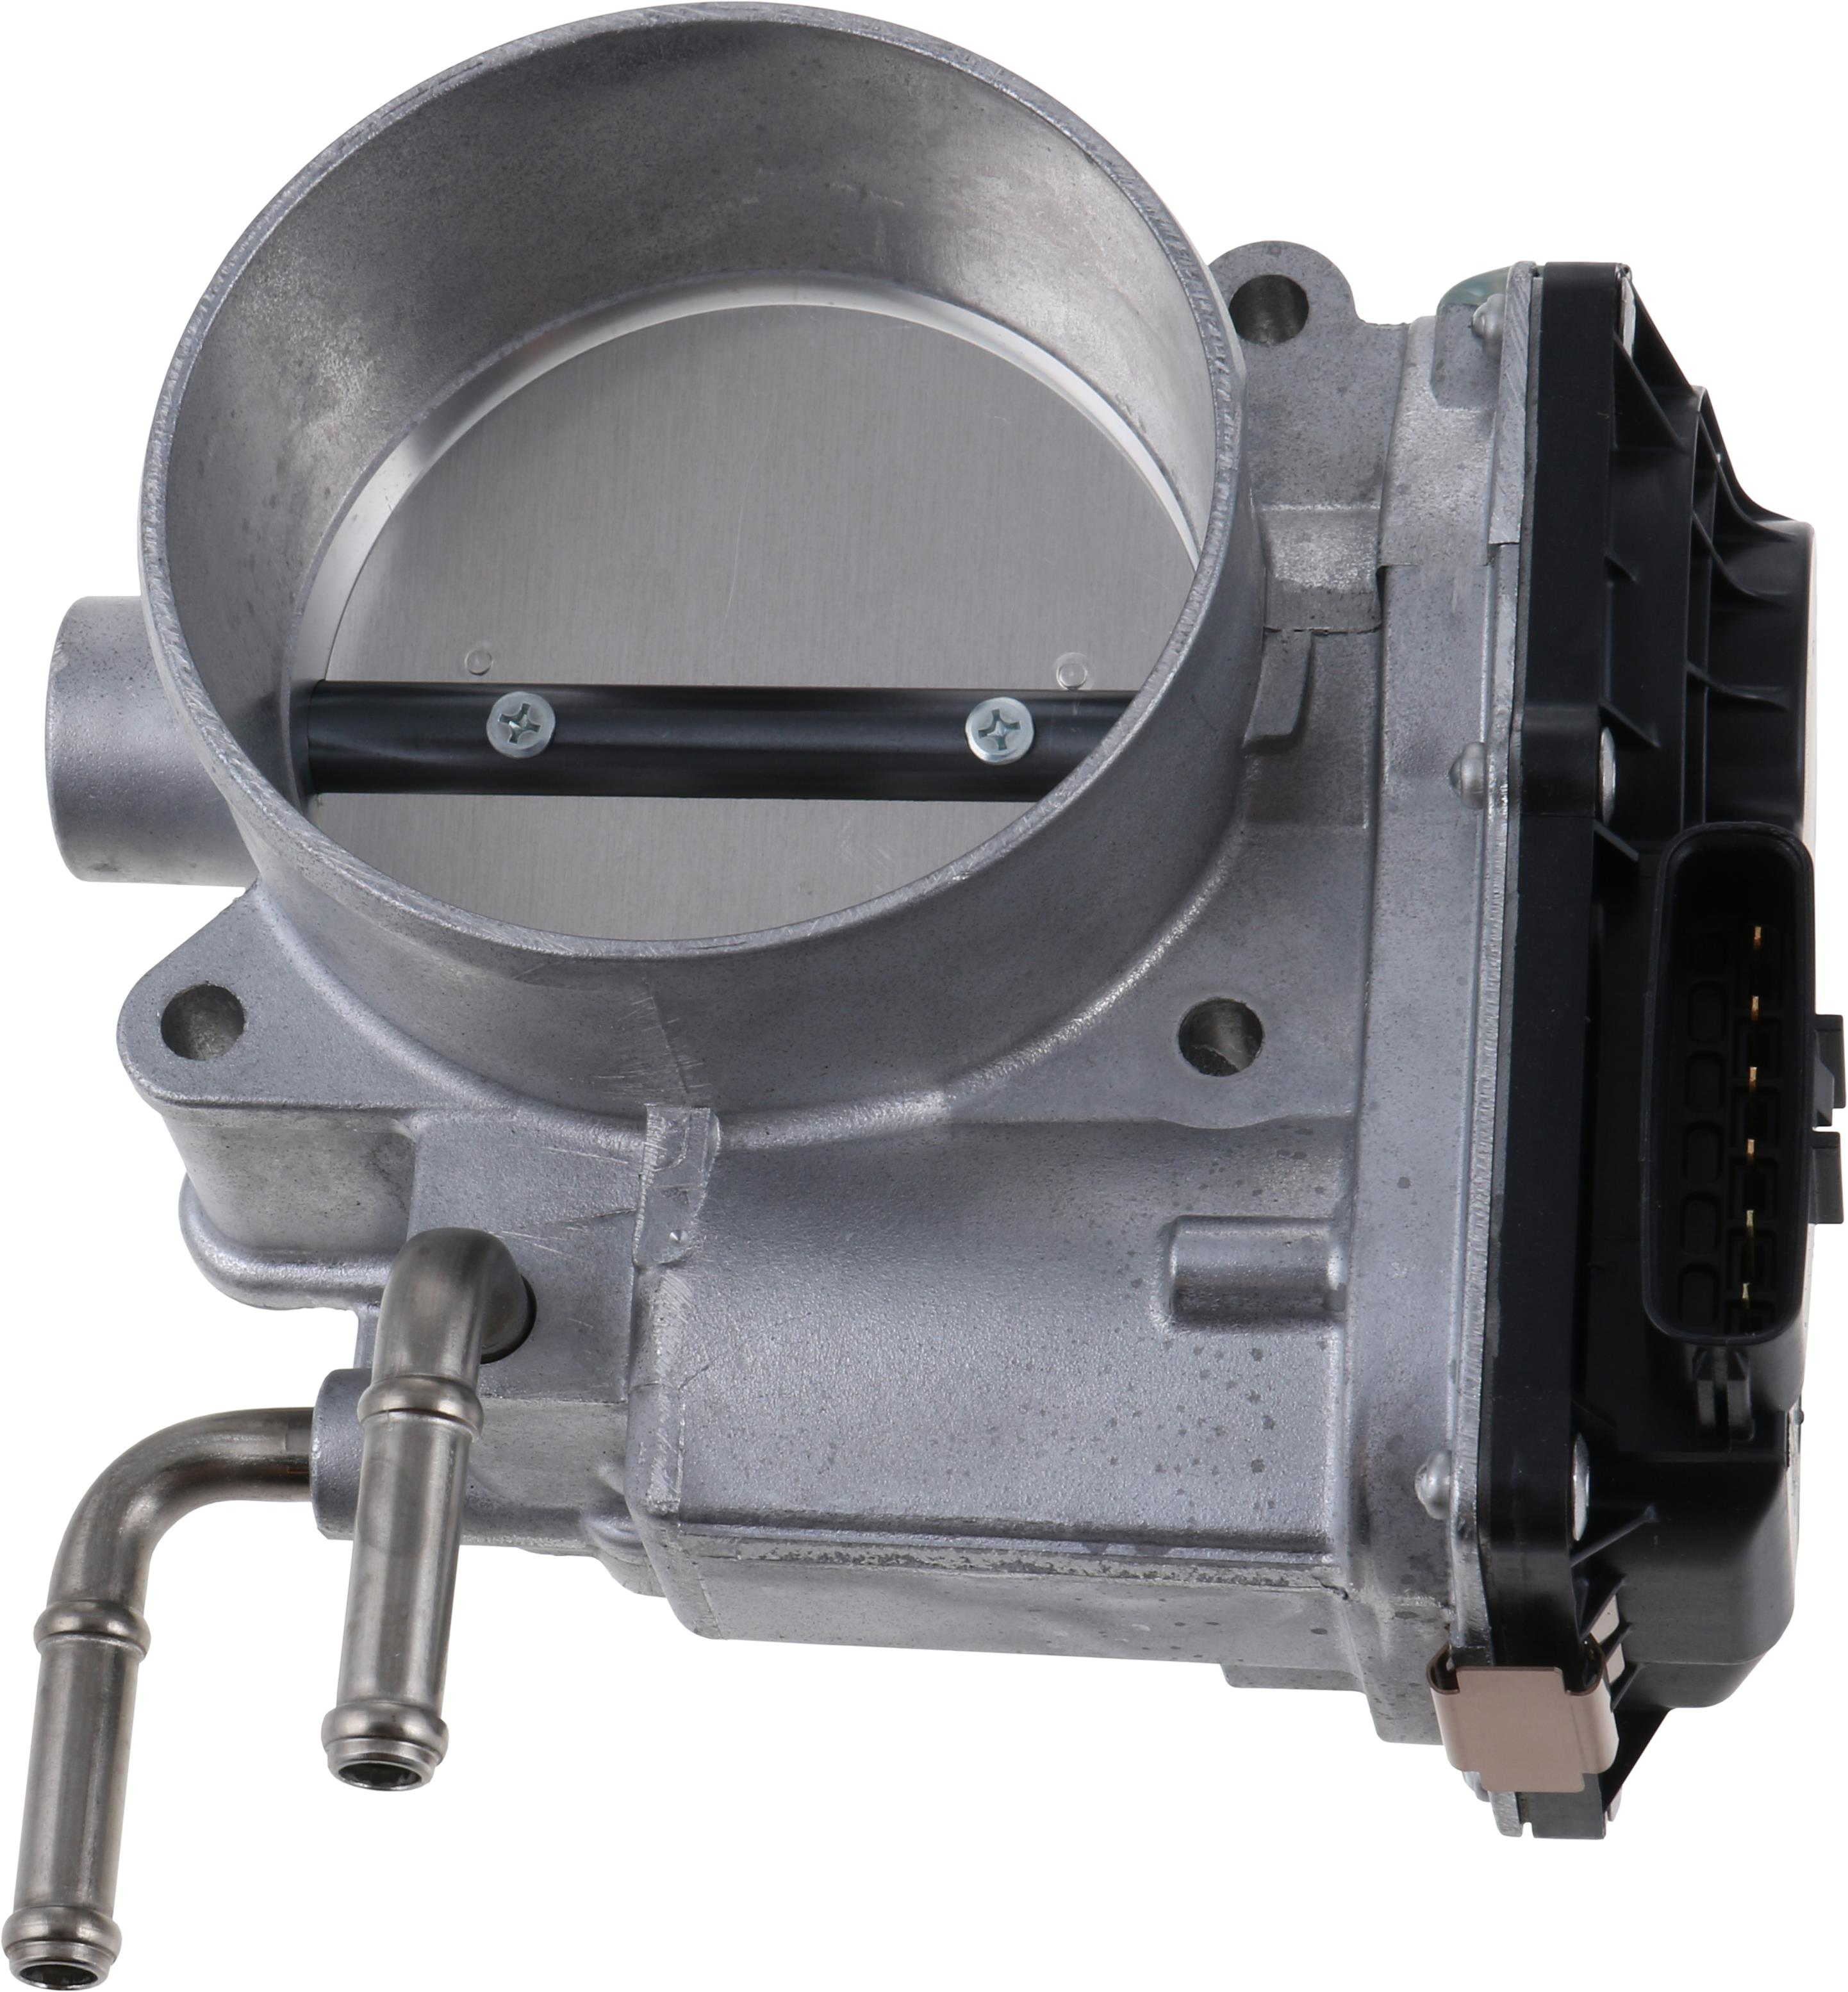 Nissan Titan Fuel Injection Throttle Body. CHAMBER